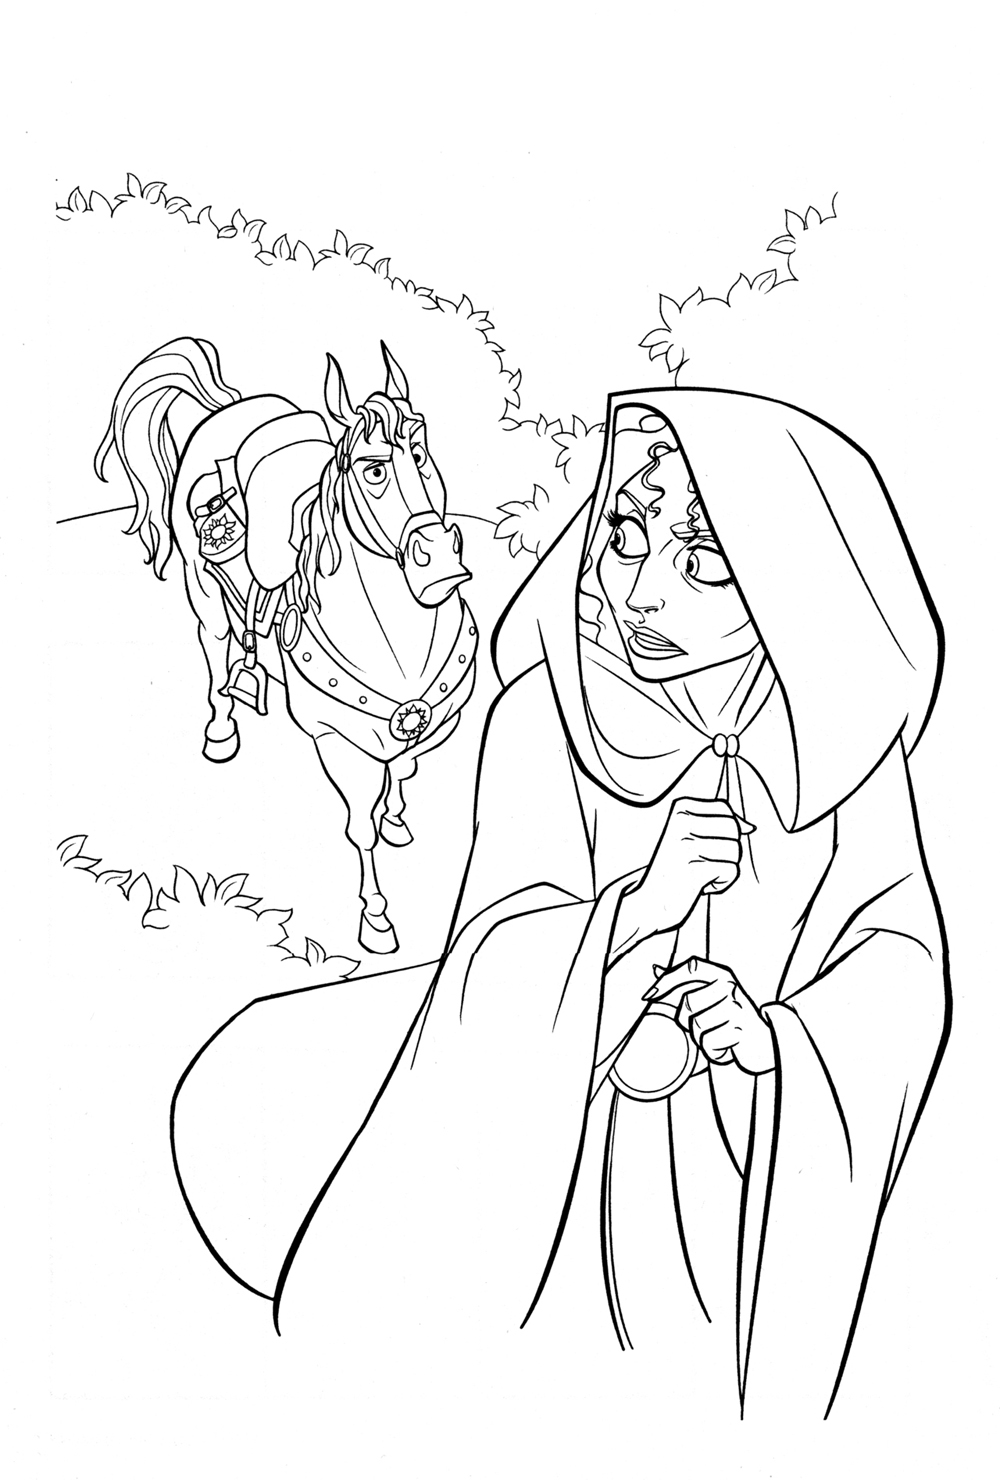 tangled coloring pages maximus ticket - photo#15